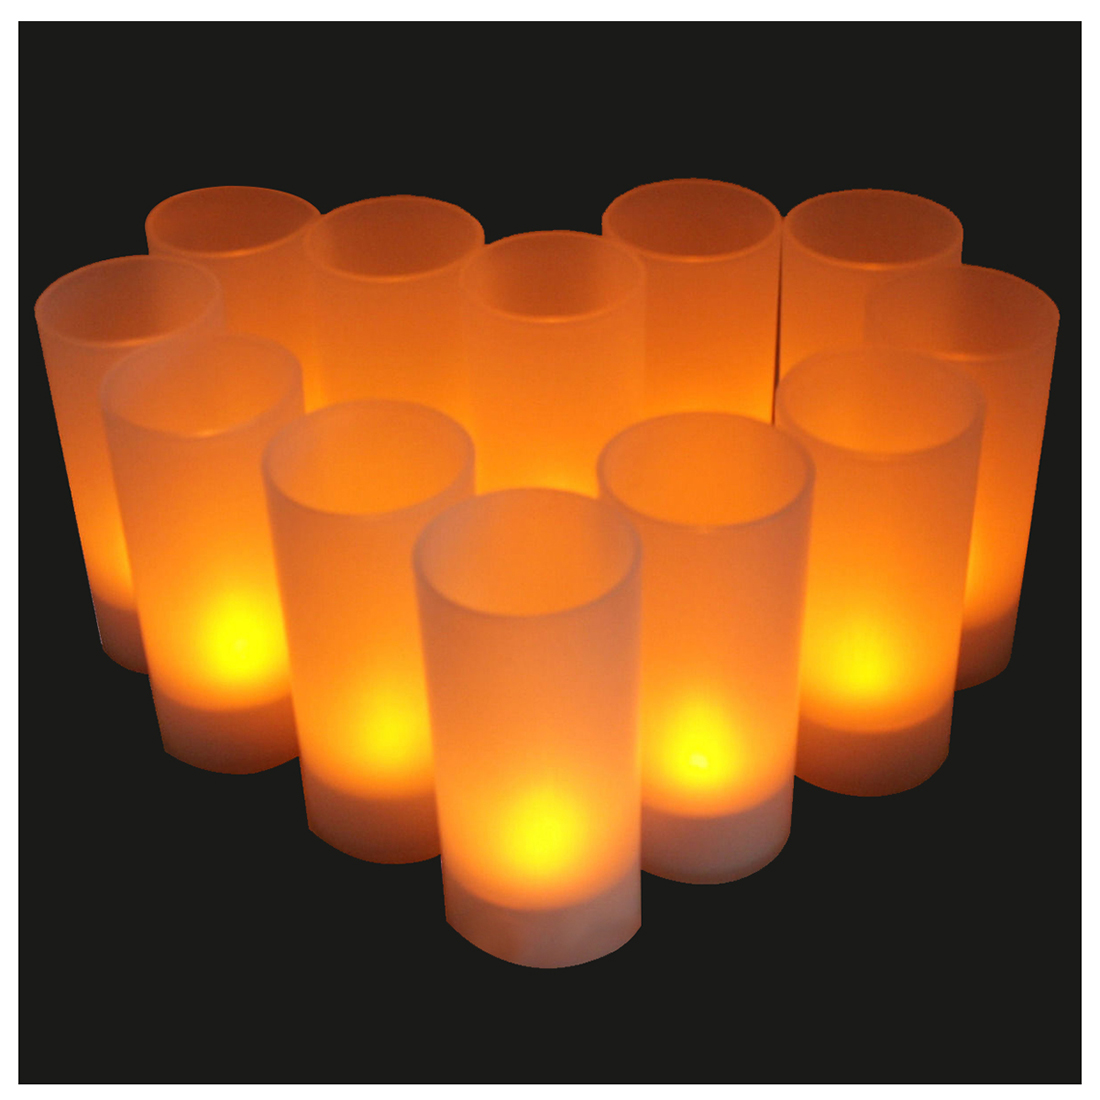 12X Flameless Rechargeable LED Tea Light Flickering Amber Tealights Candles US